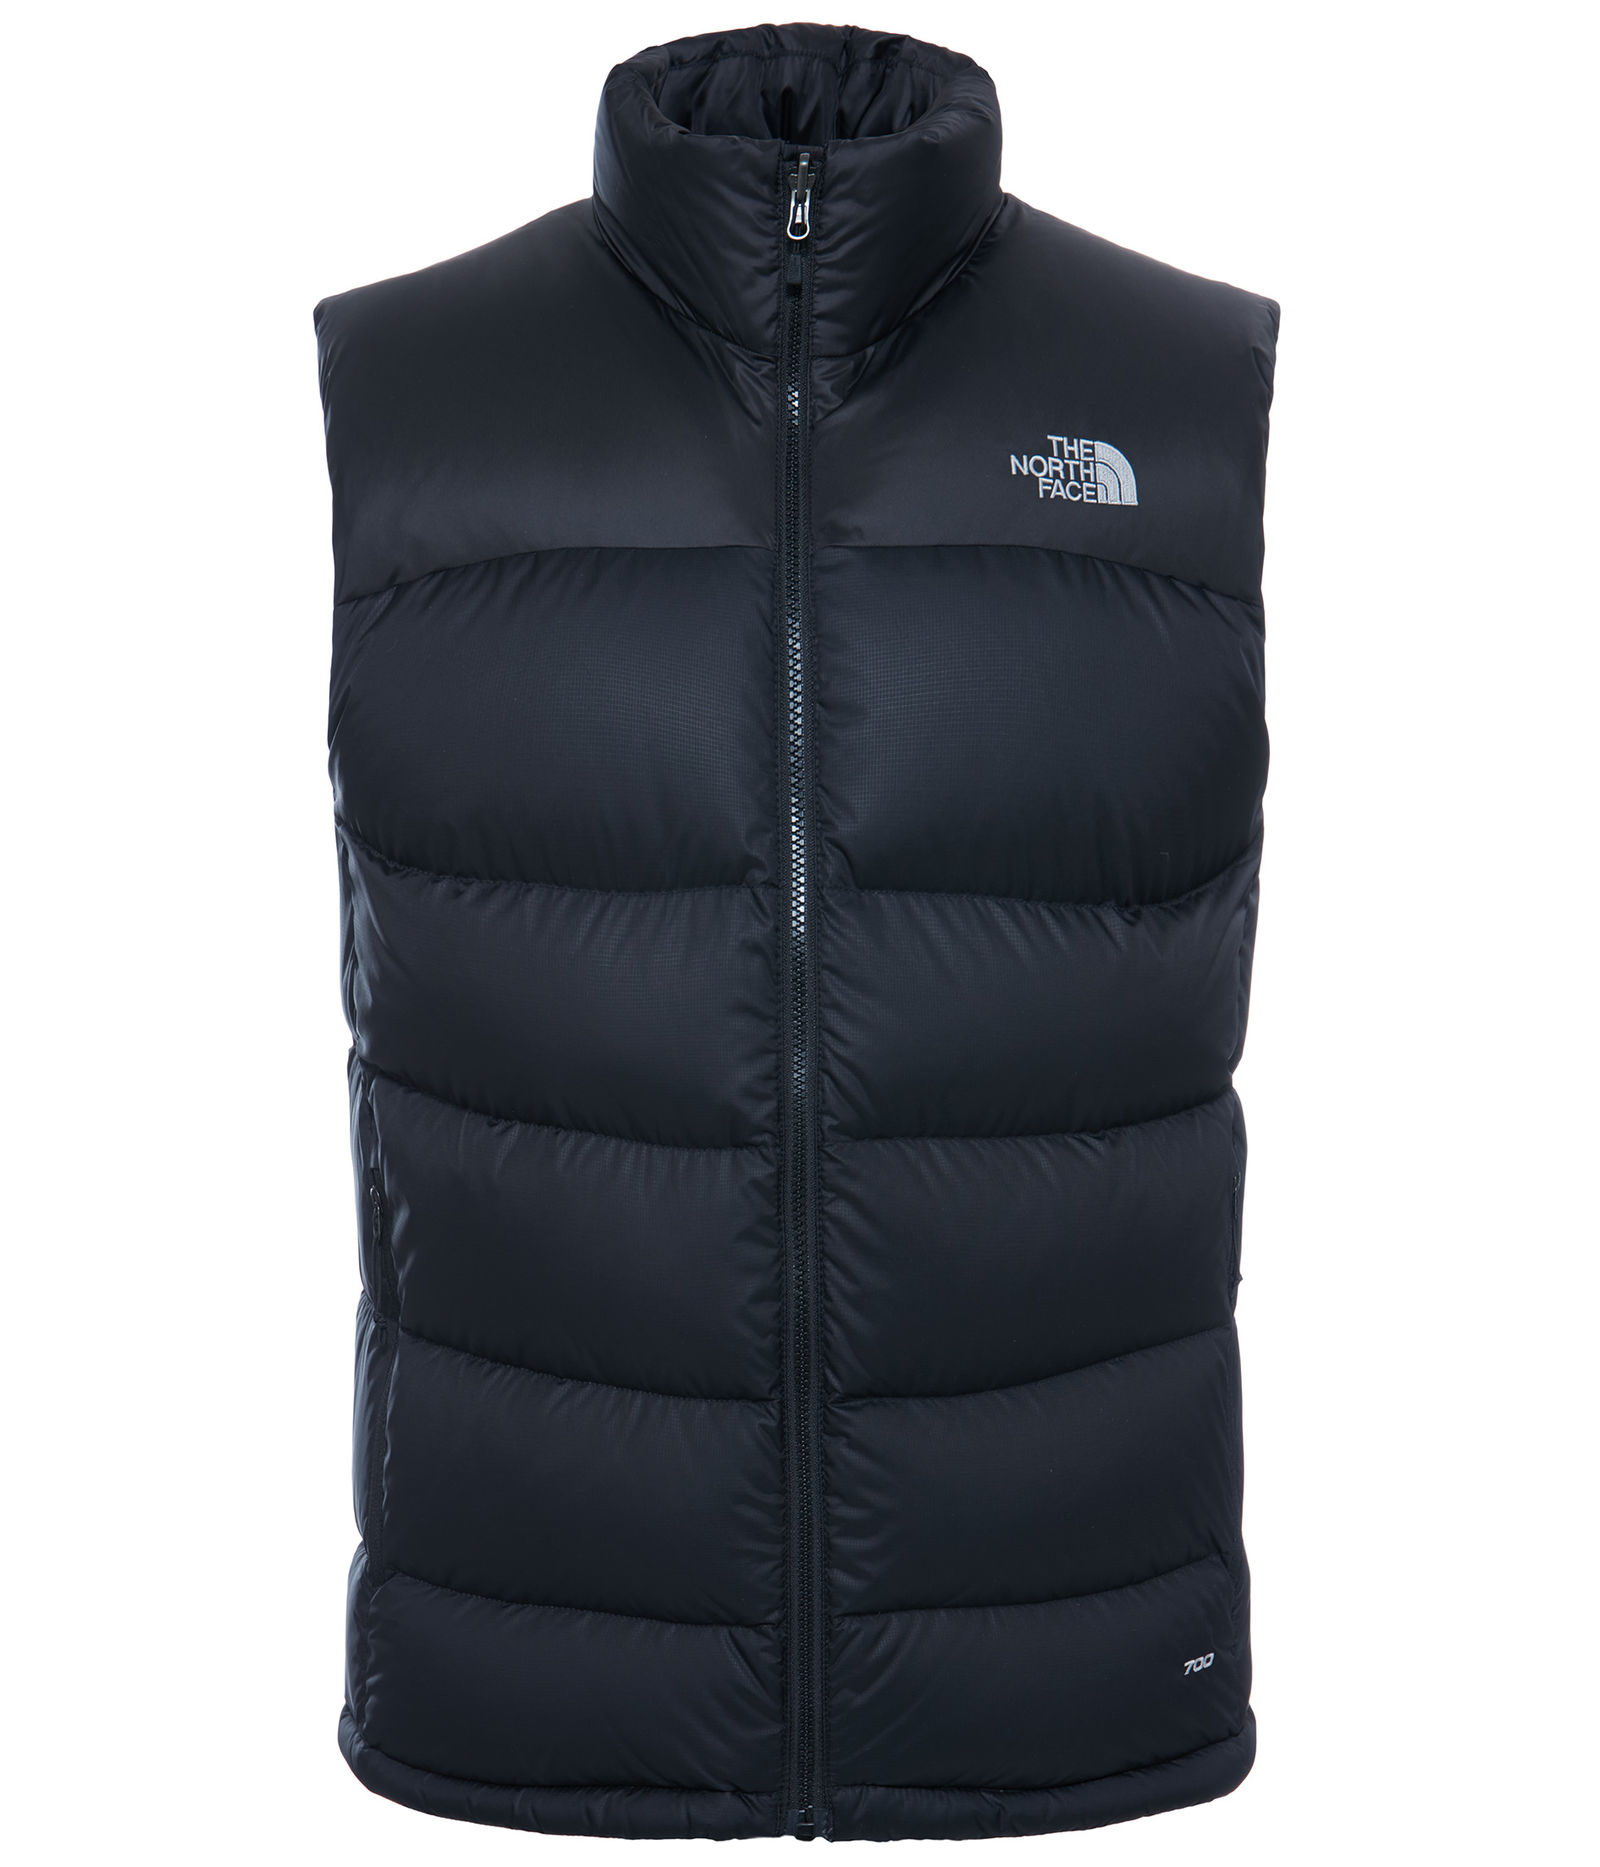 THE NORTH FACE (Bild 10)